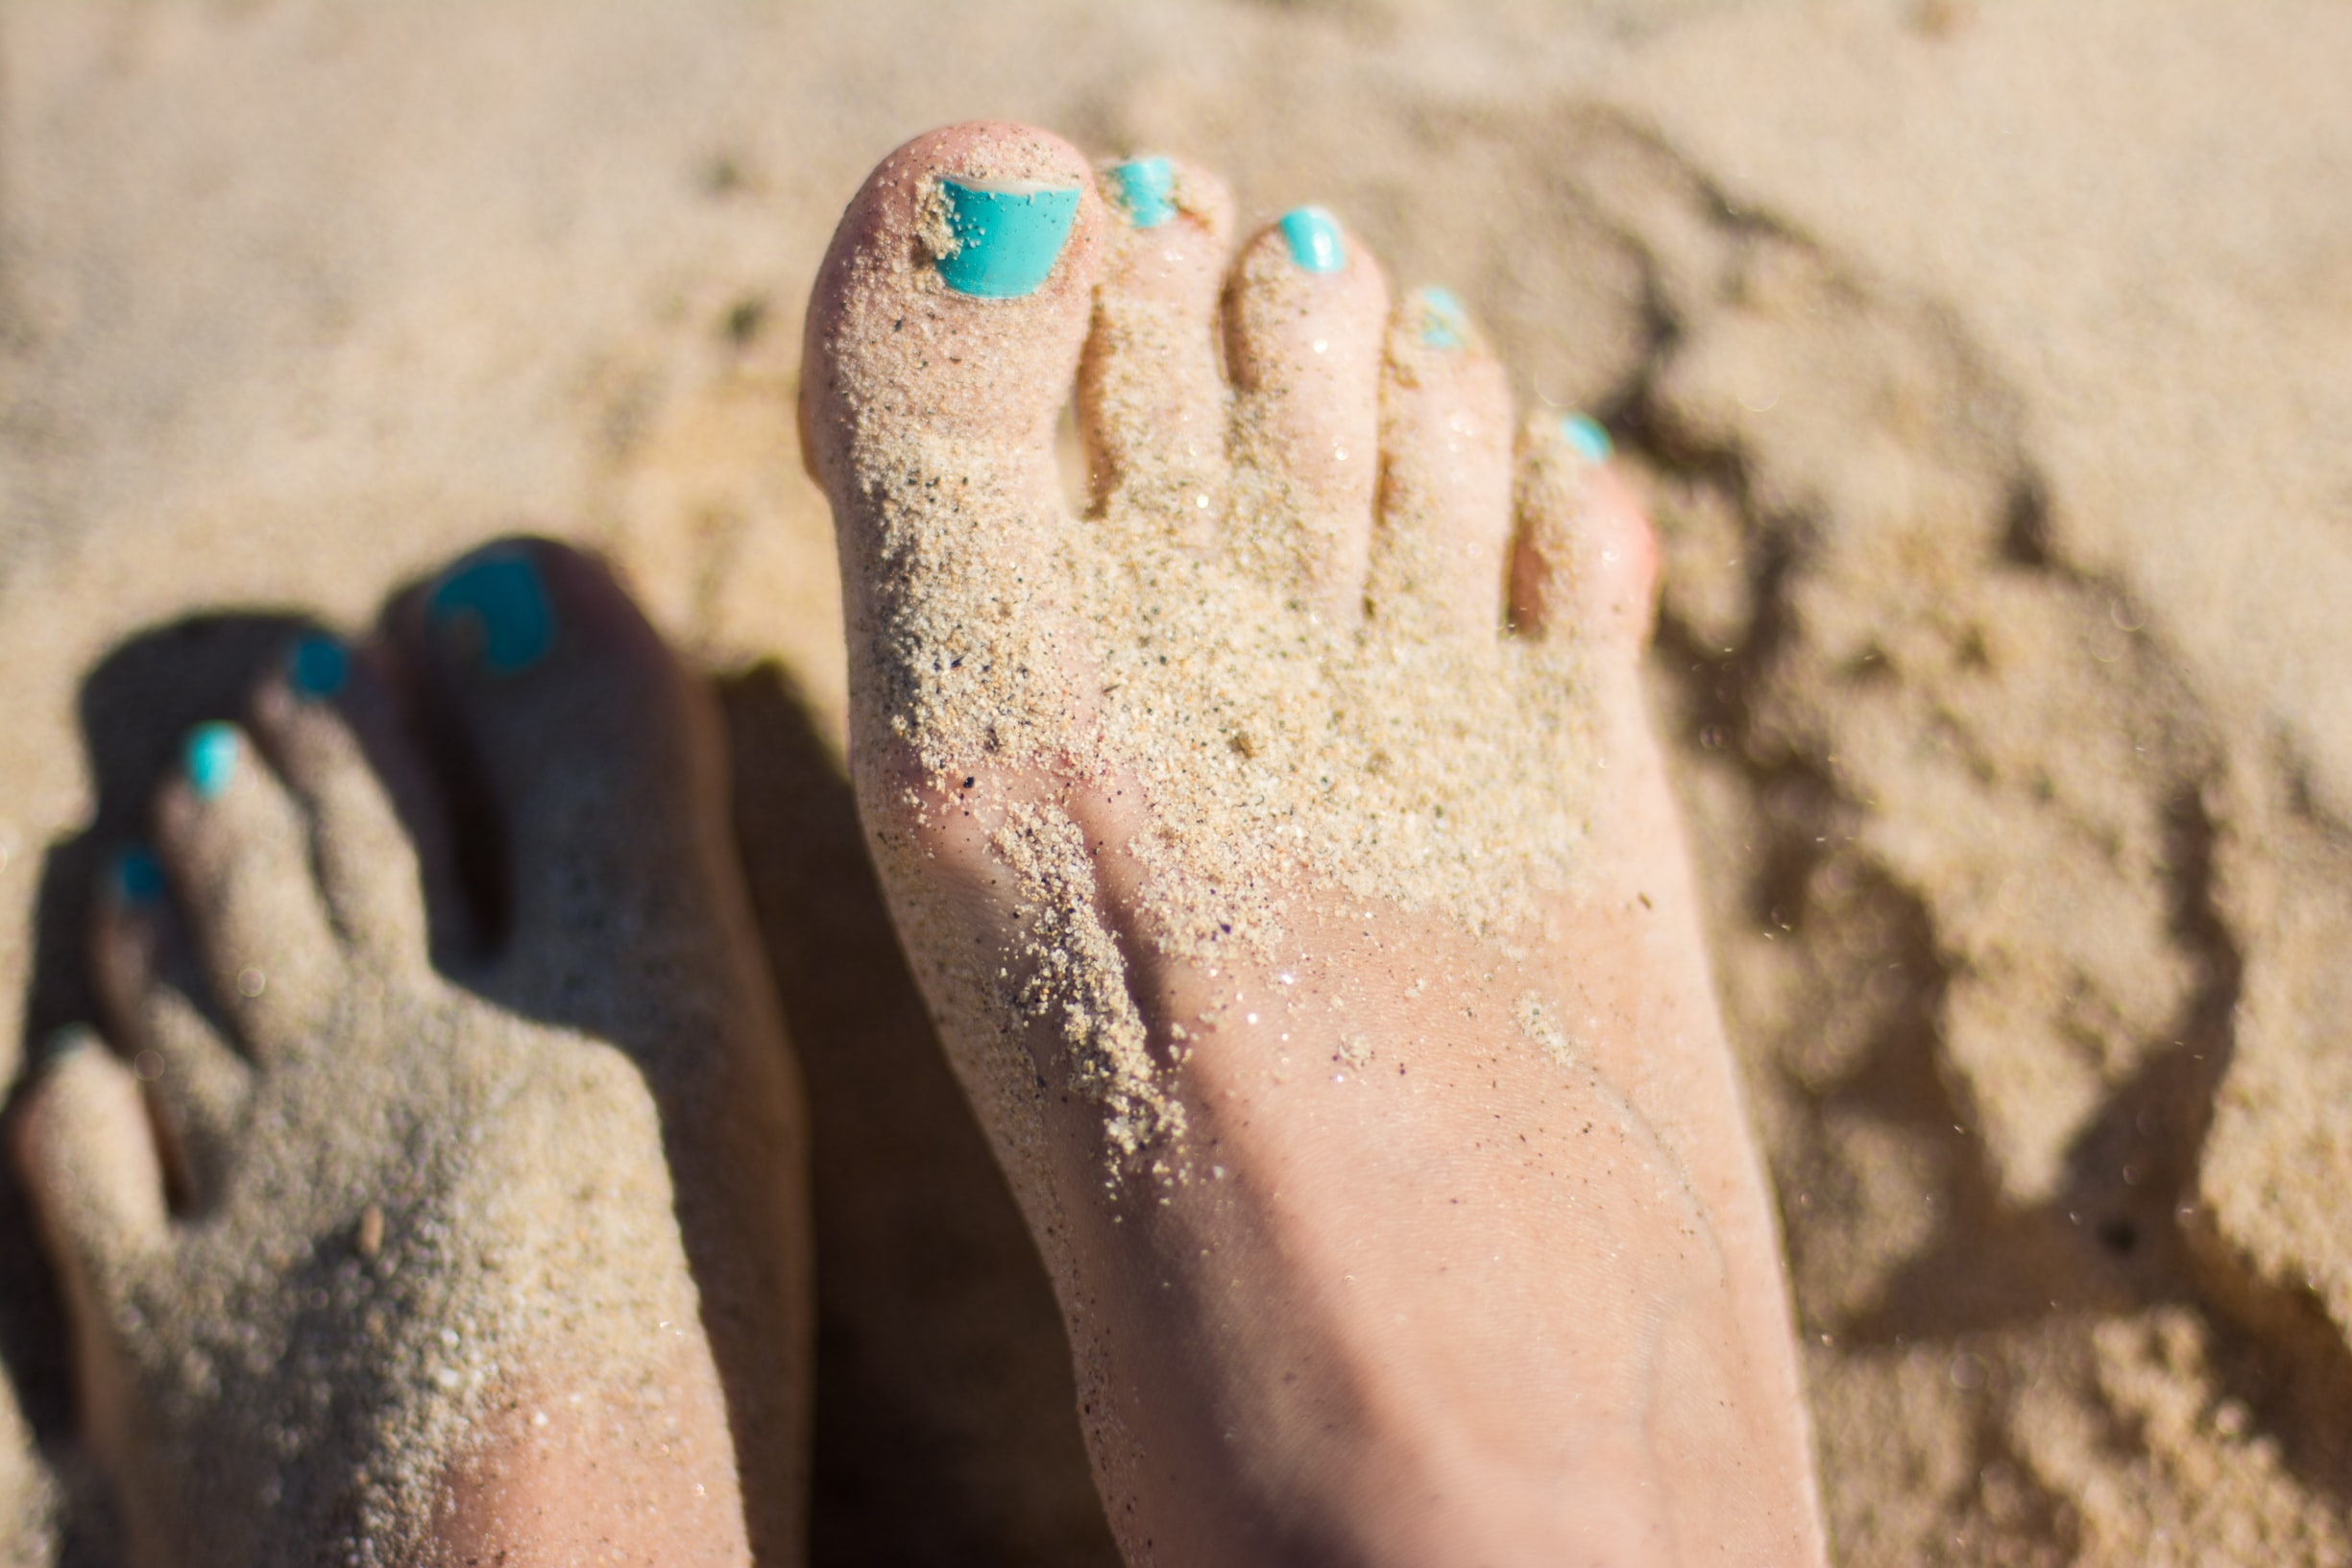 Sandy feet with turquoise colored nails at Isola del Giglio